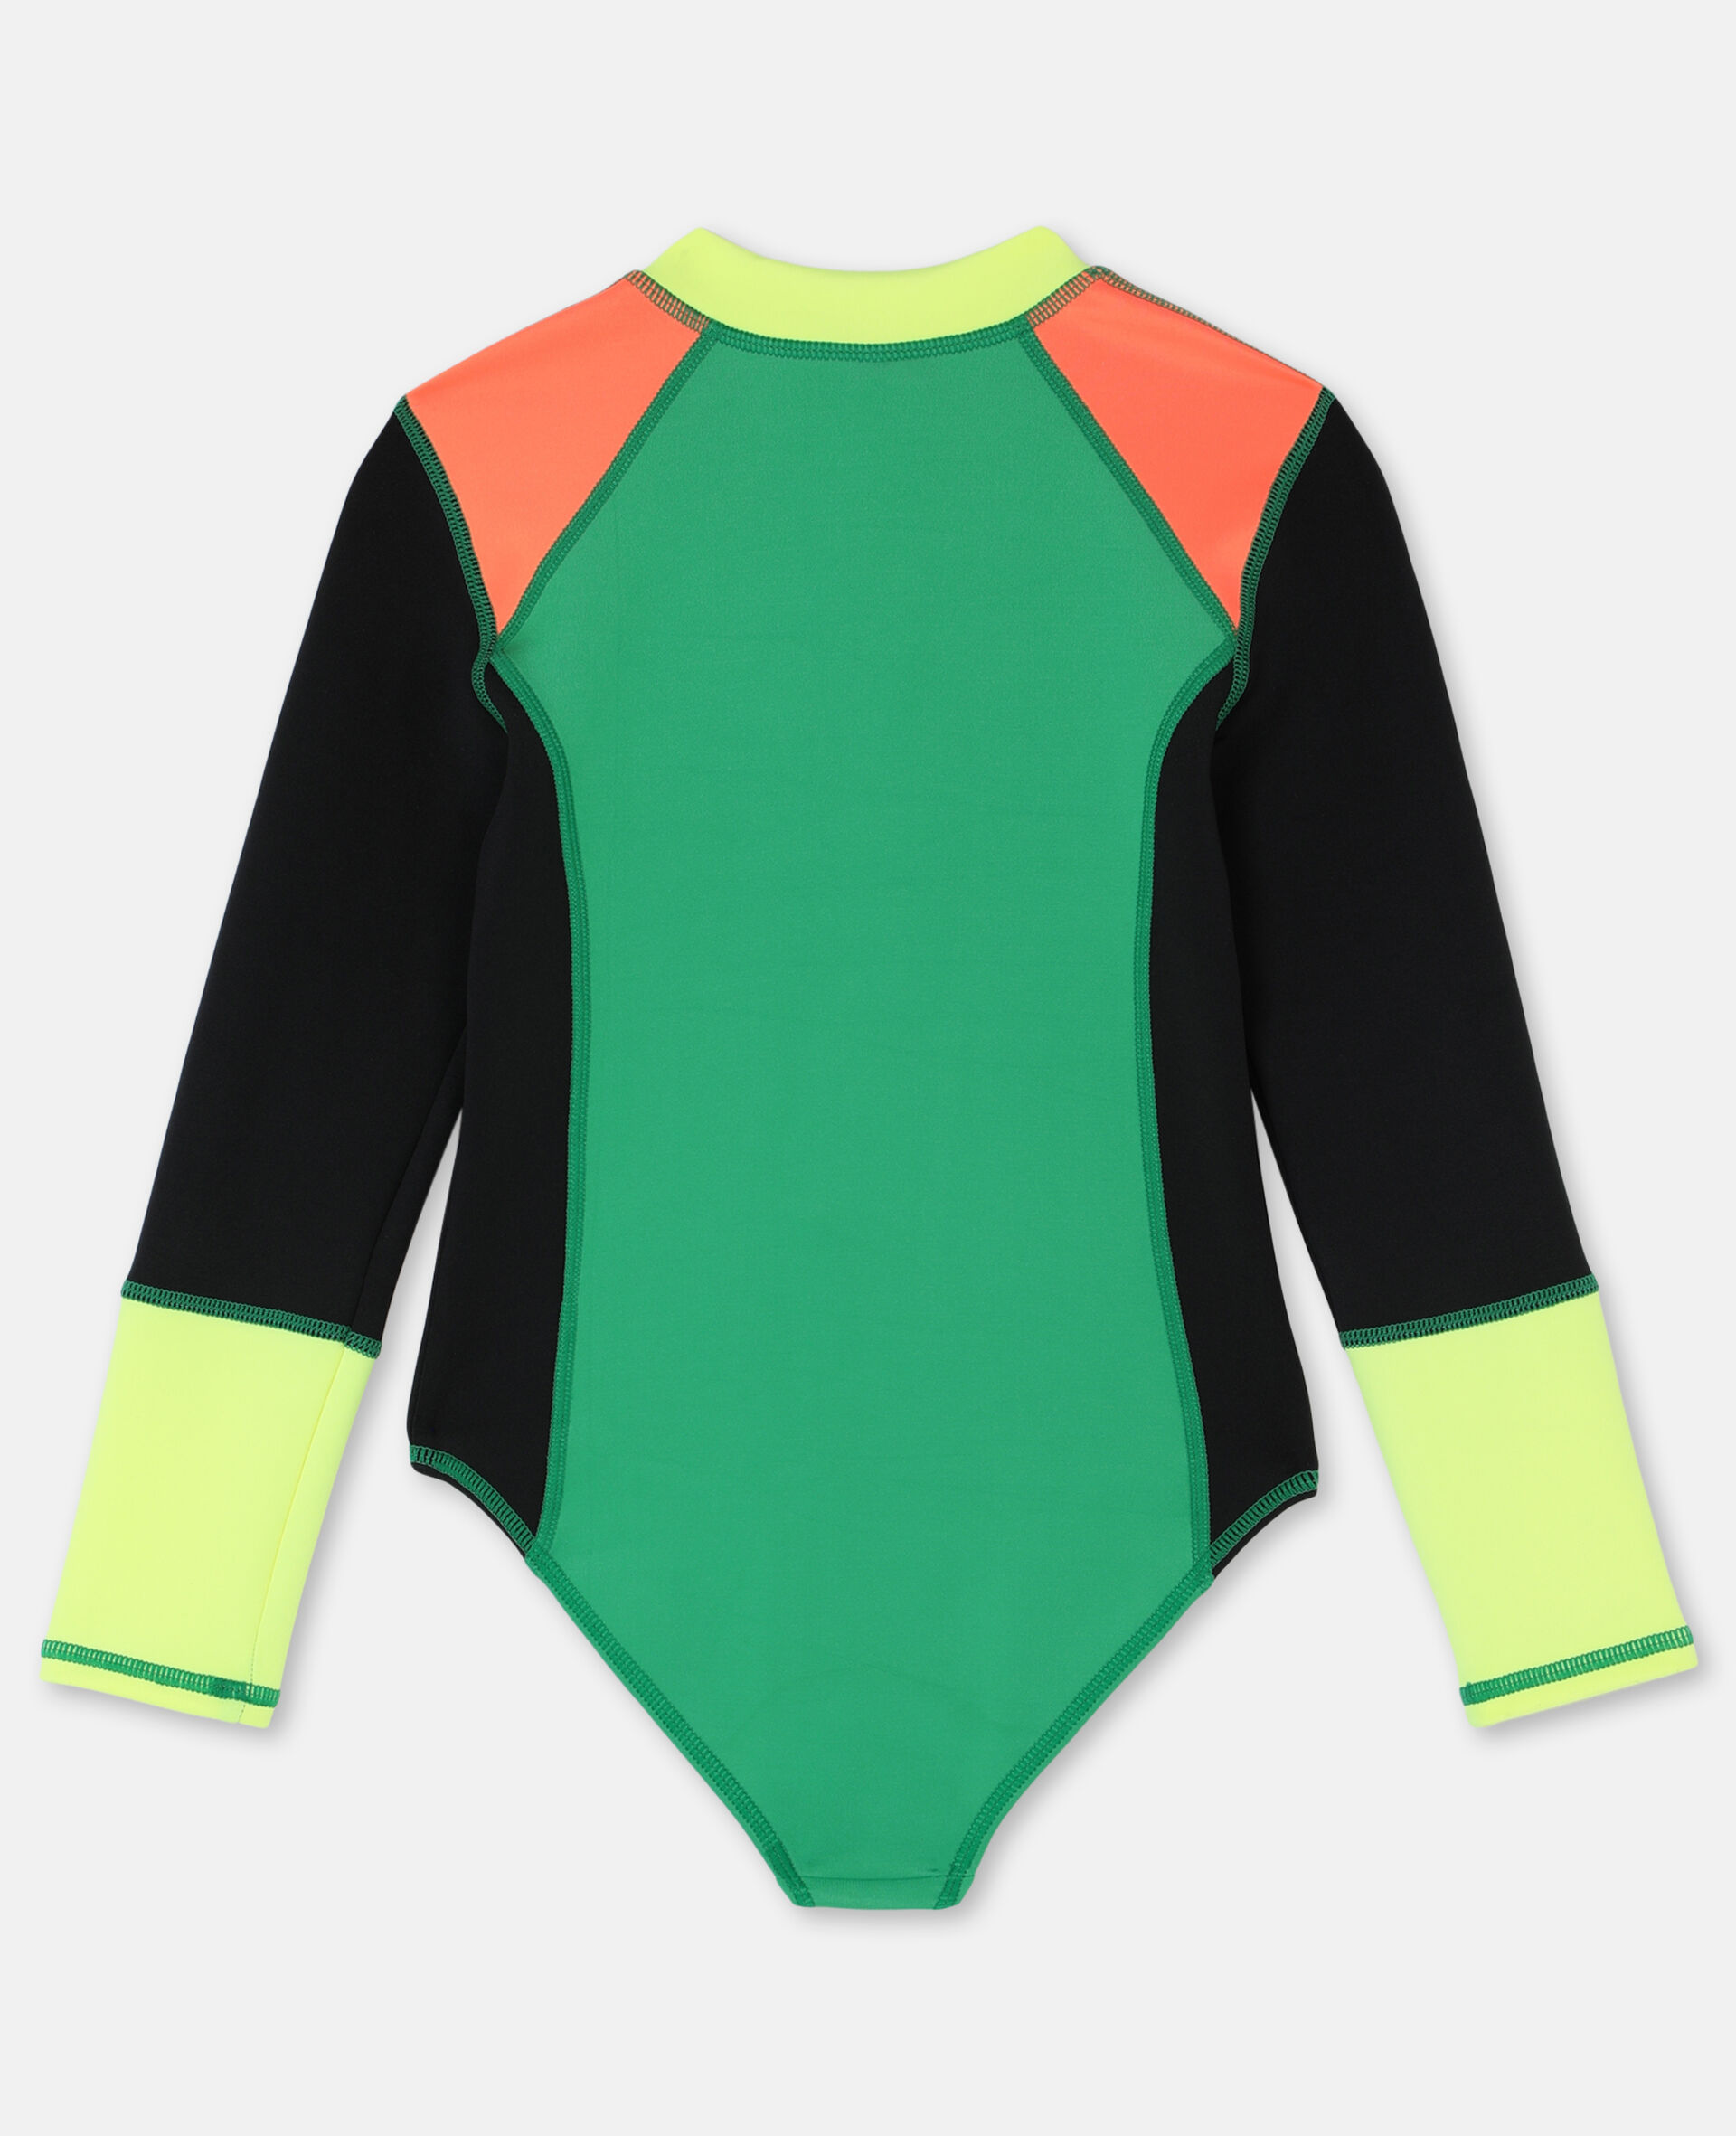 Multicolour Scuba Swimsuit-Multicolour-large image number 4